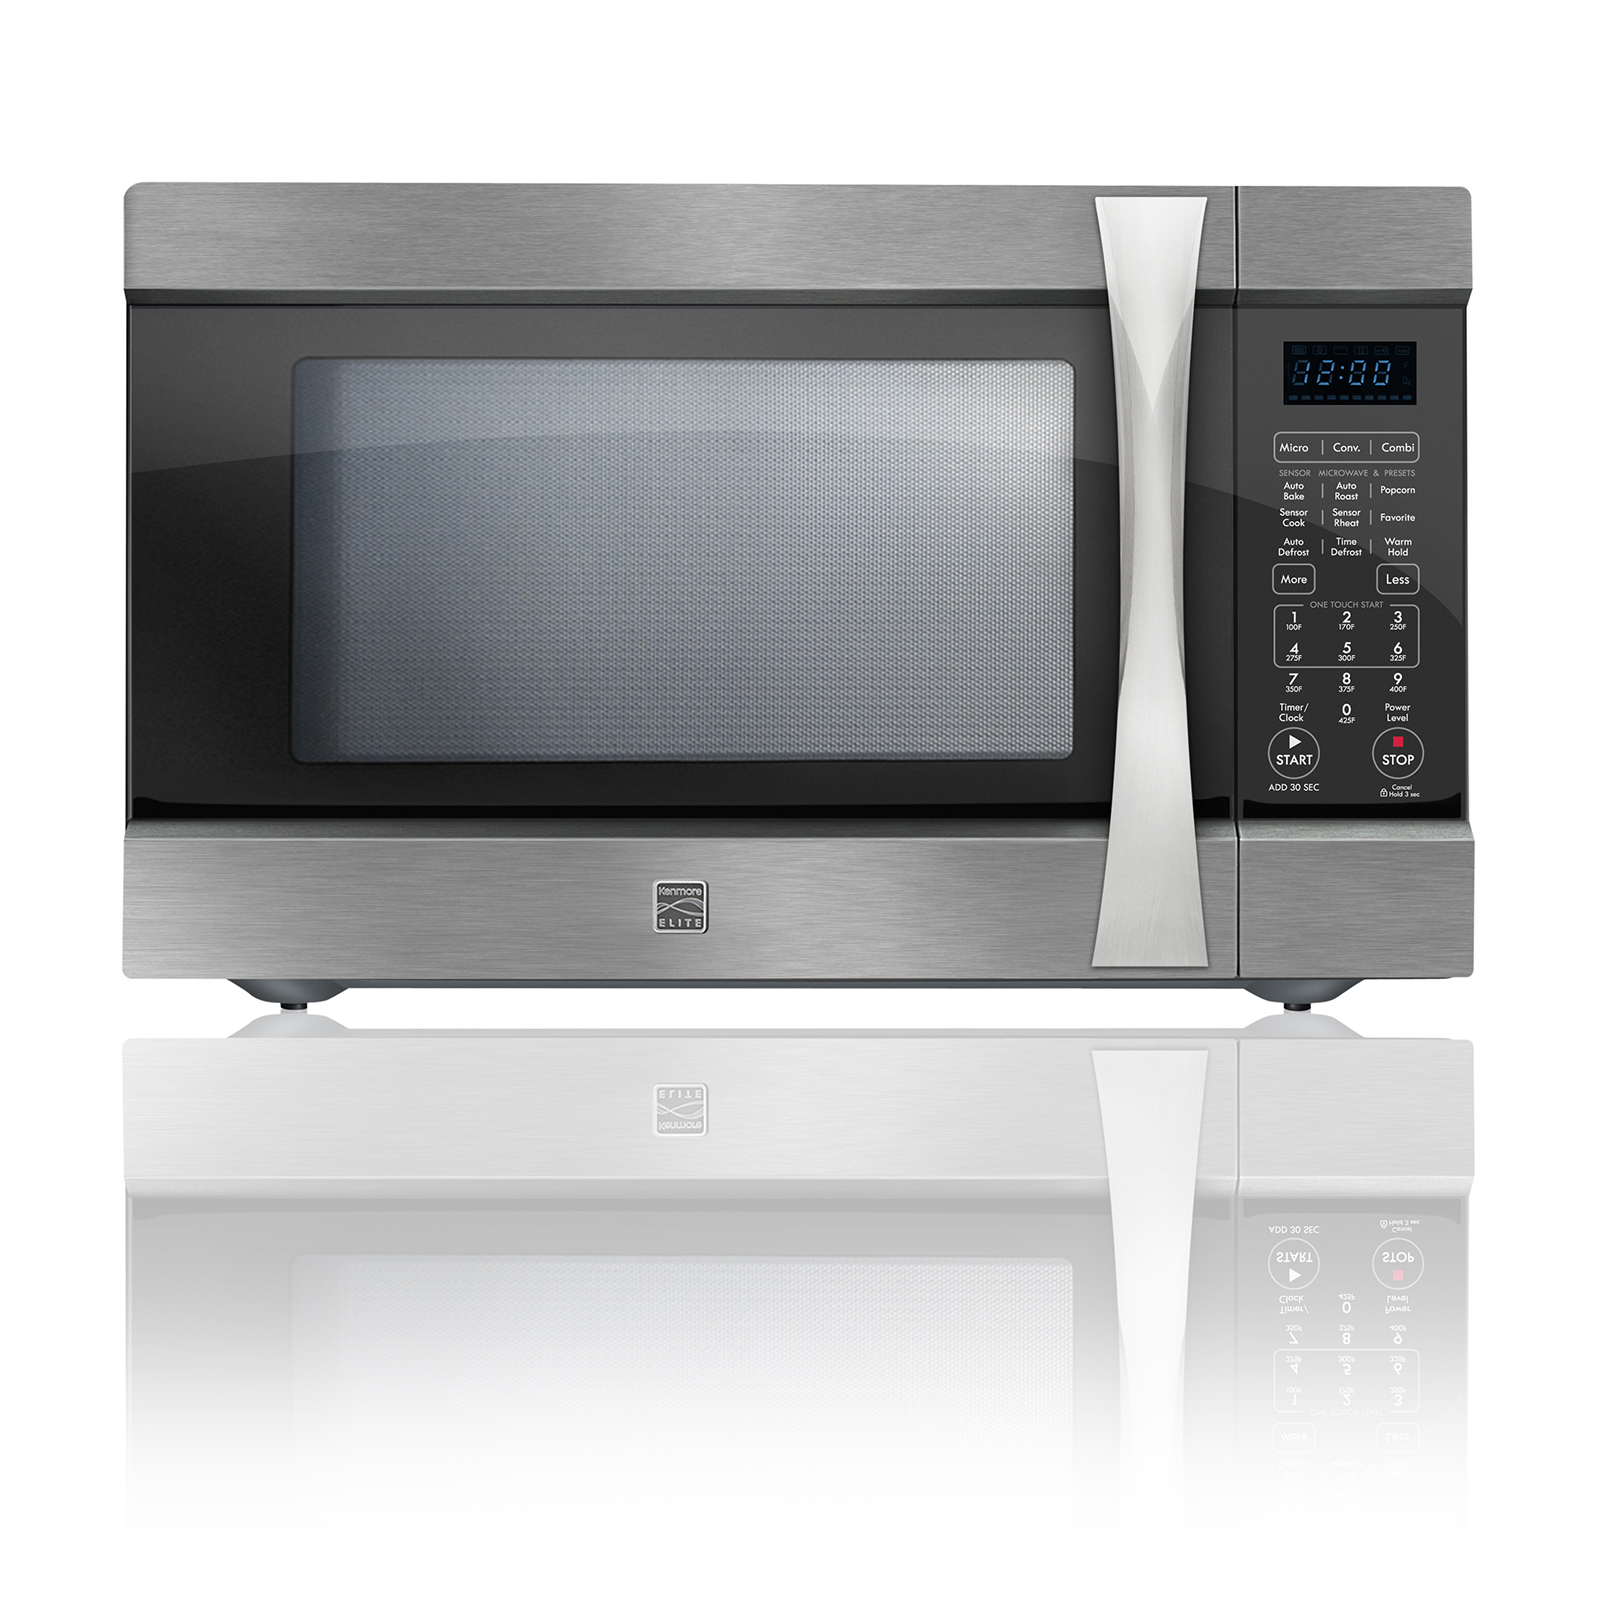 Countertop Microwave Convection Ovens Kenmore Elite 74153 1 5 Cu Ft Countertop Microwave W